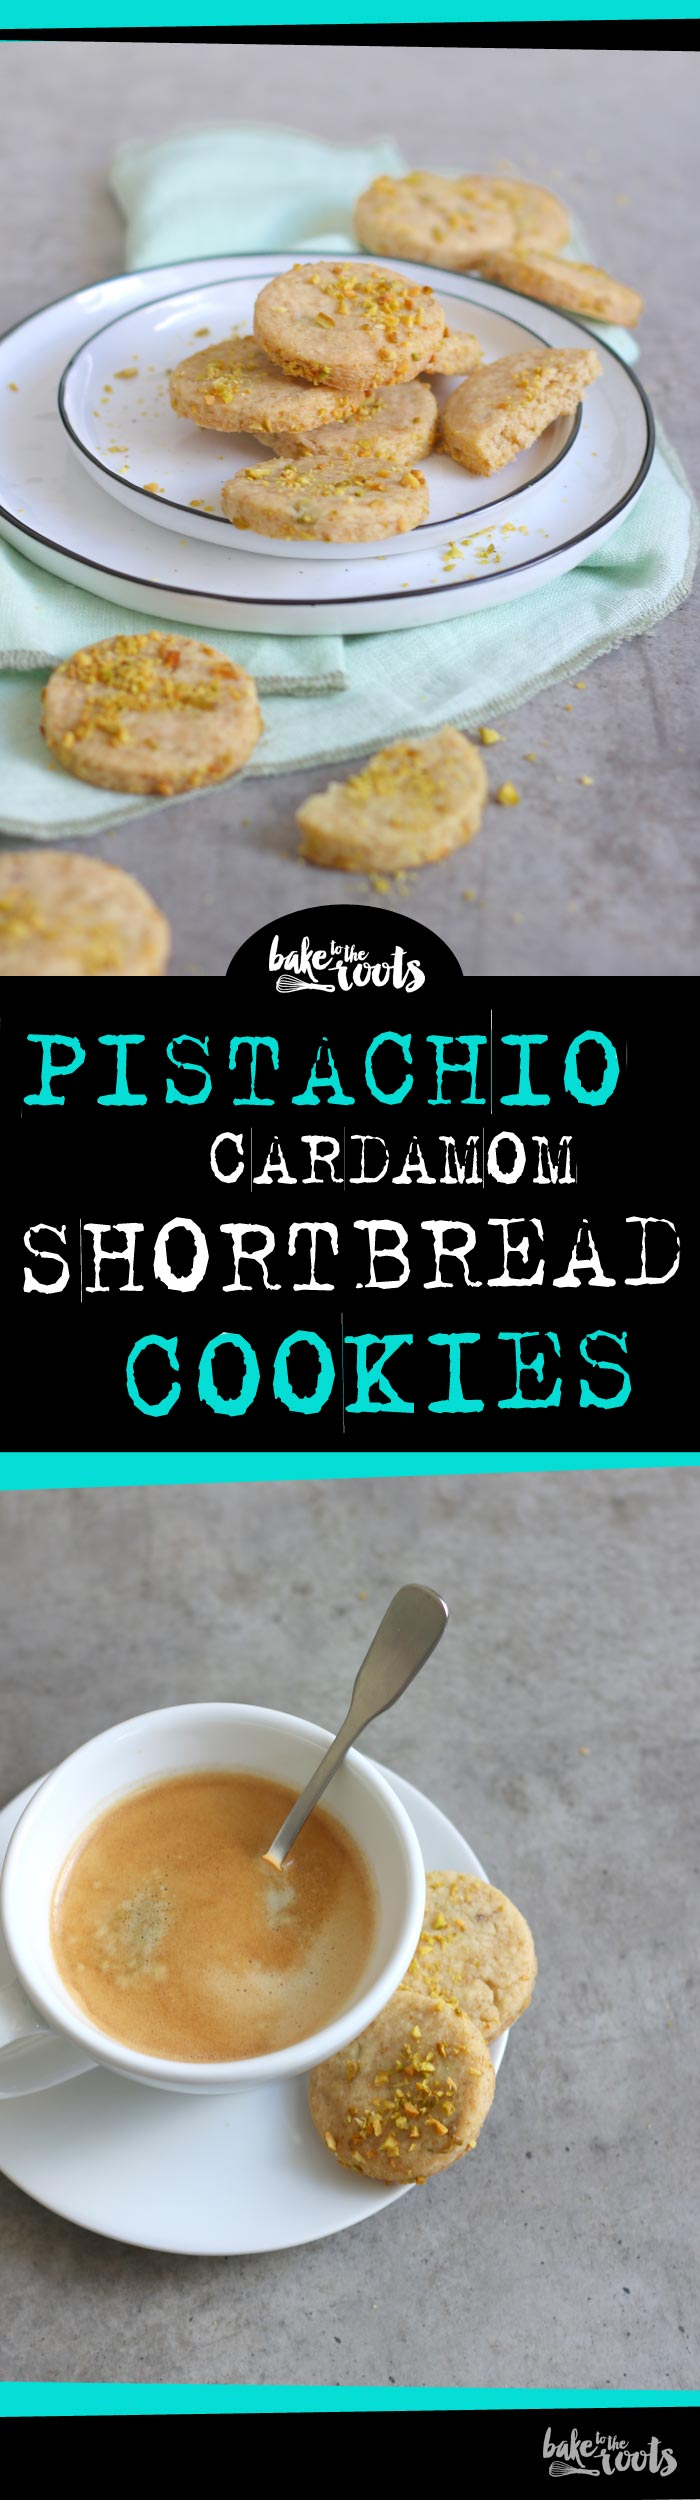 Delicious shortbread cookies with pistachios and cardamom | Bake to the roots